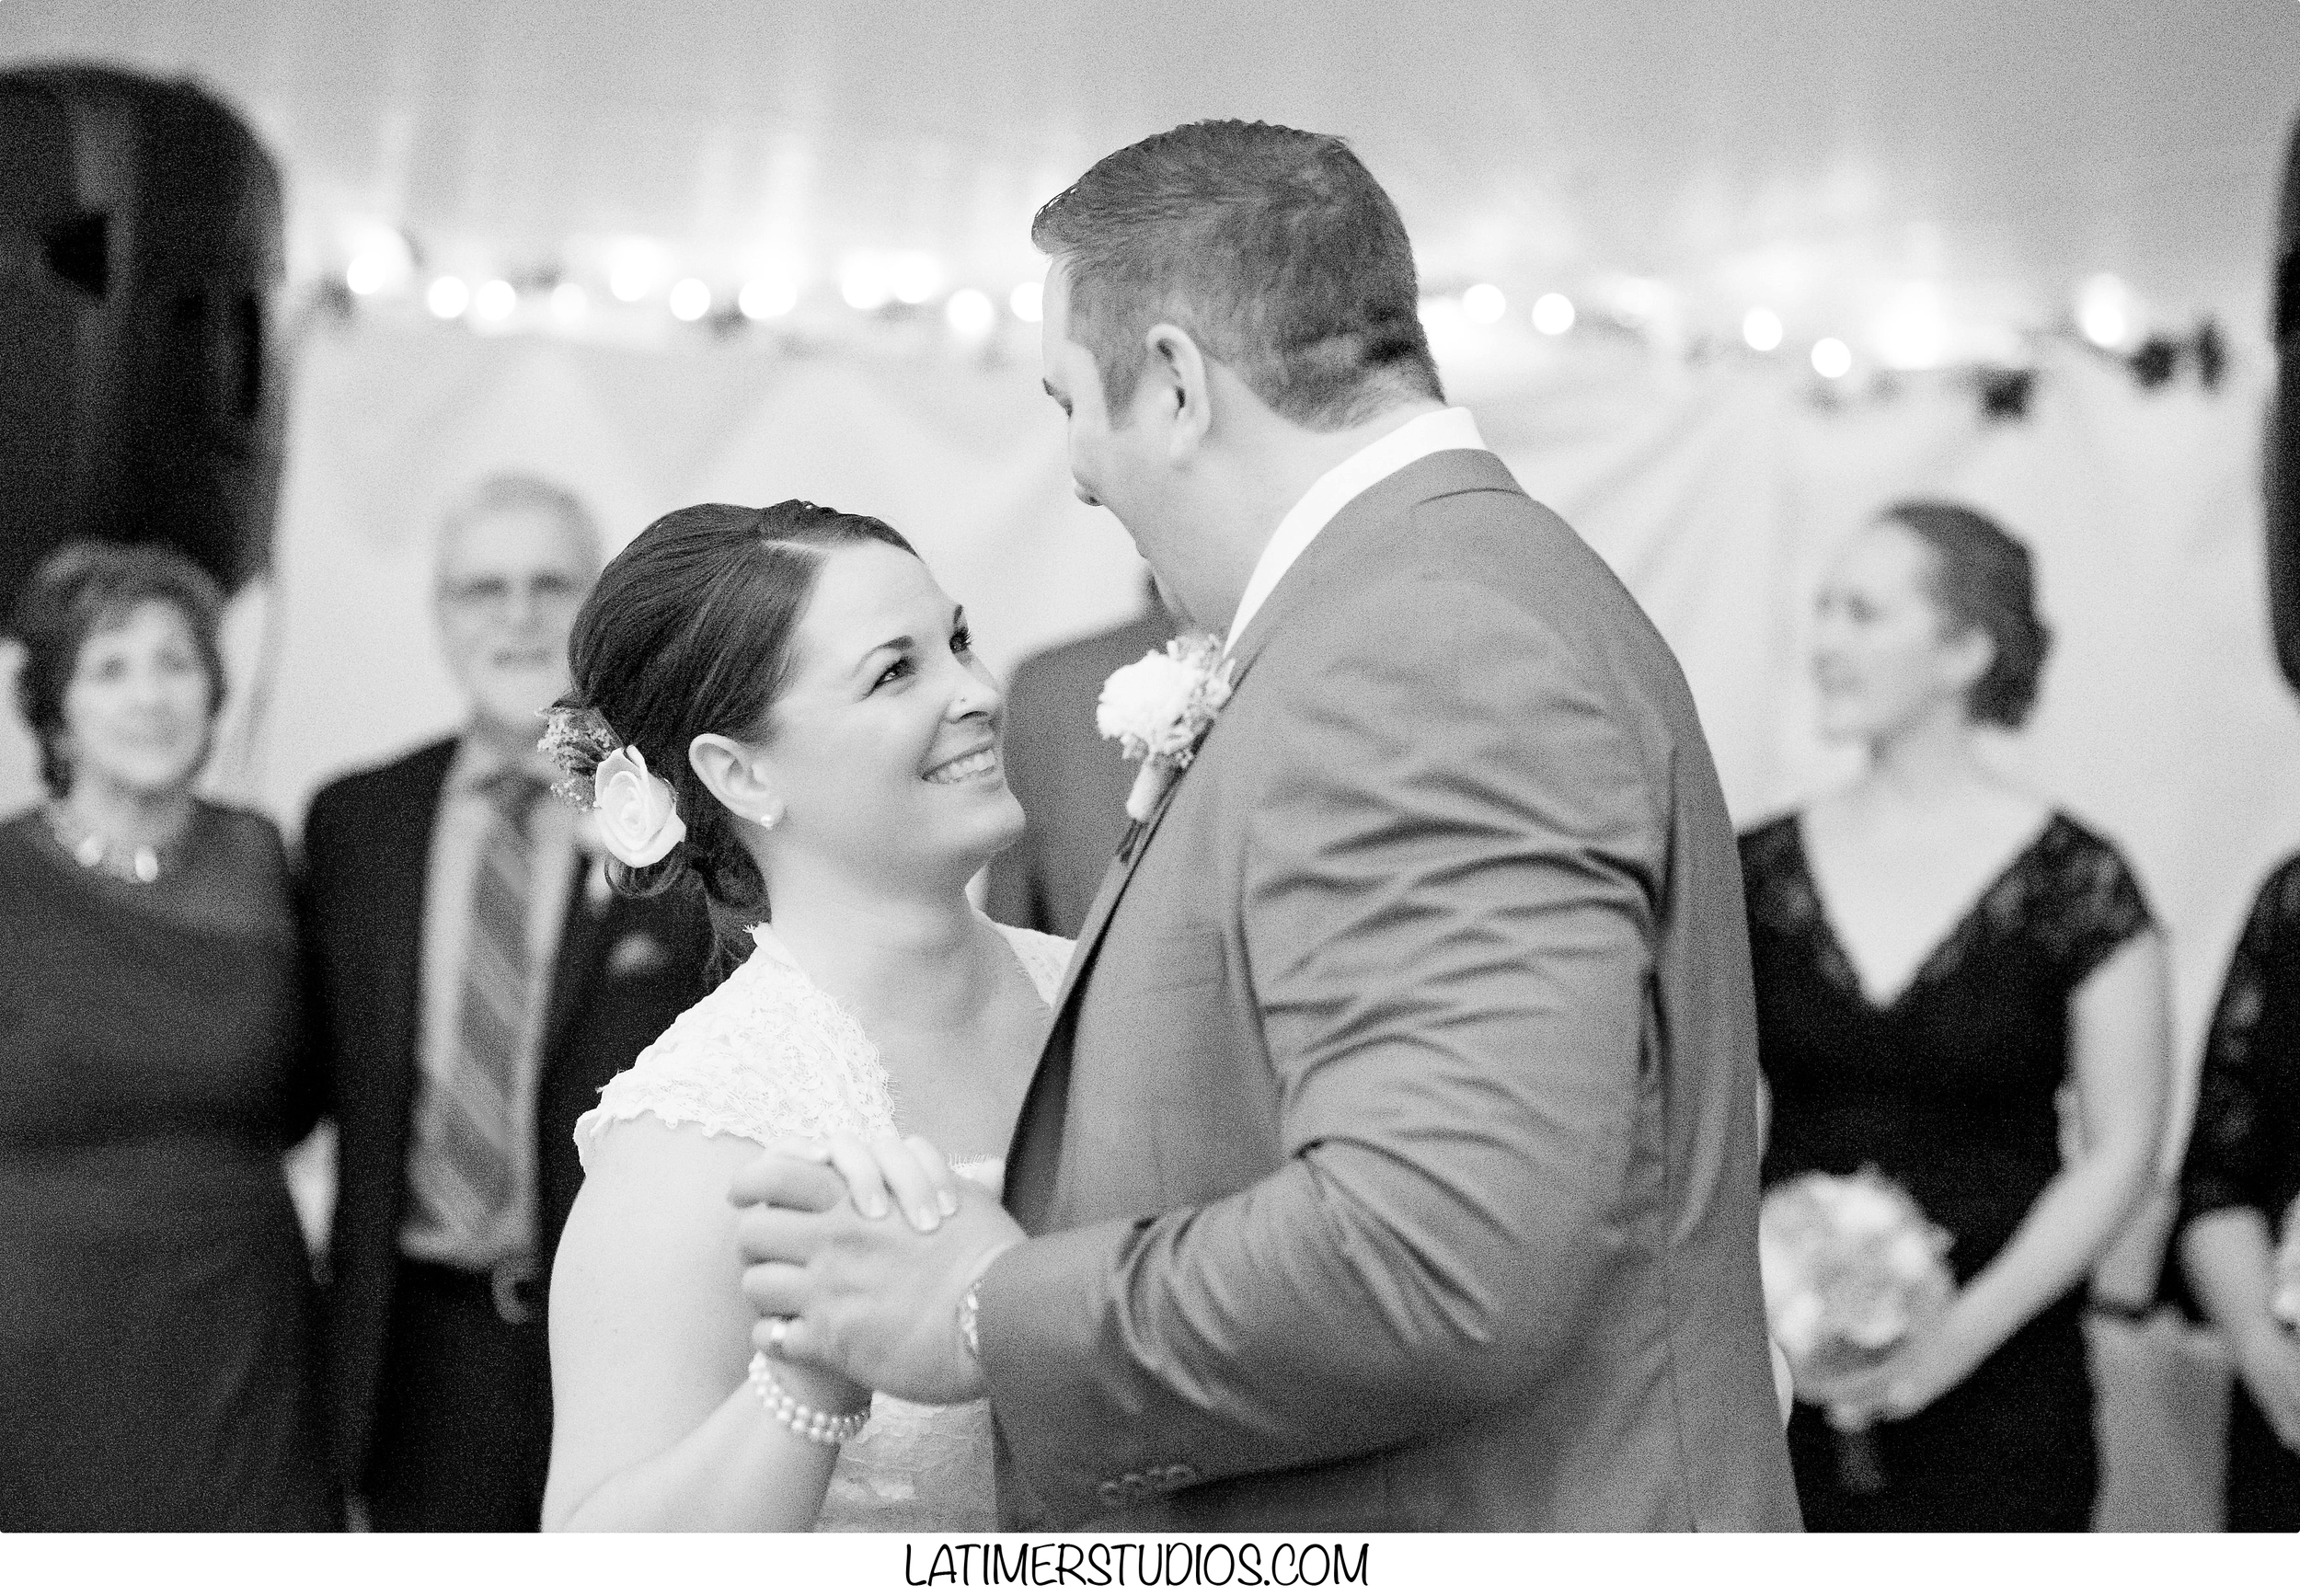 Latimer Studios Photography capturing  a first dance at a wedding at Mile Away Restaurant in Milford NH